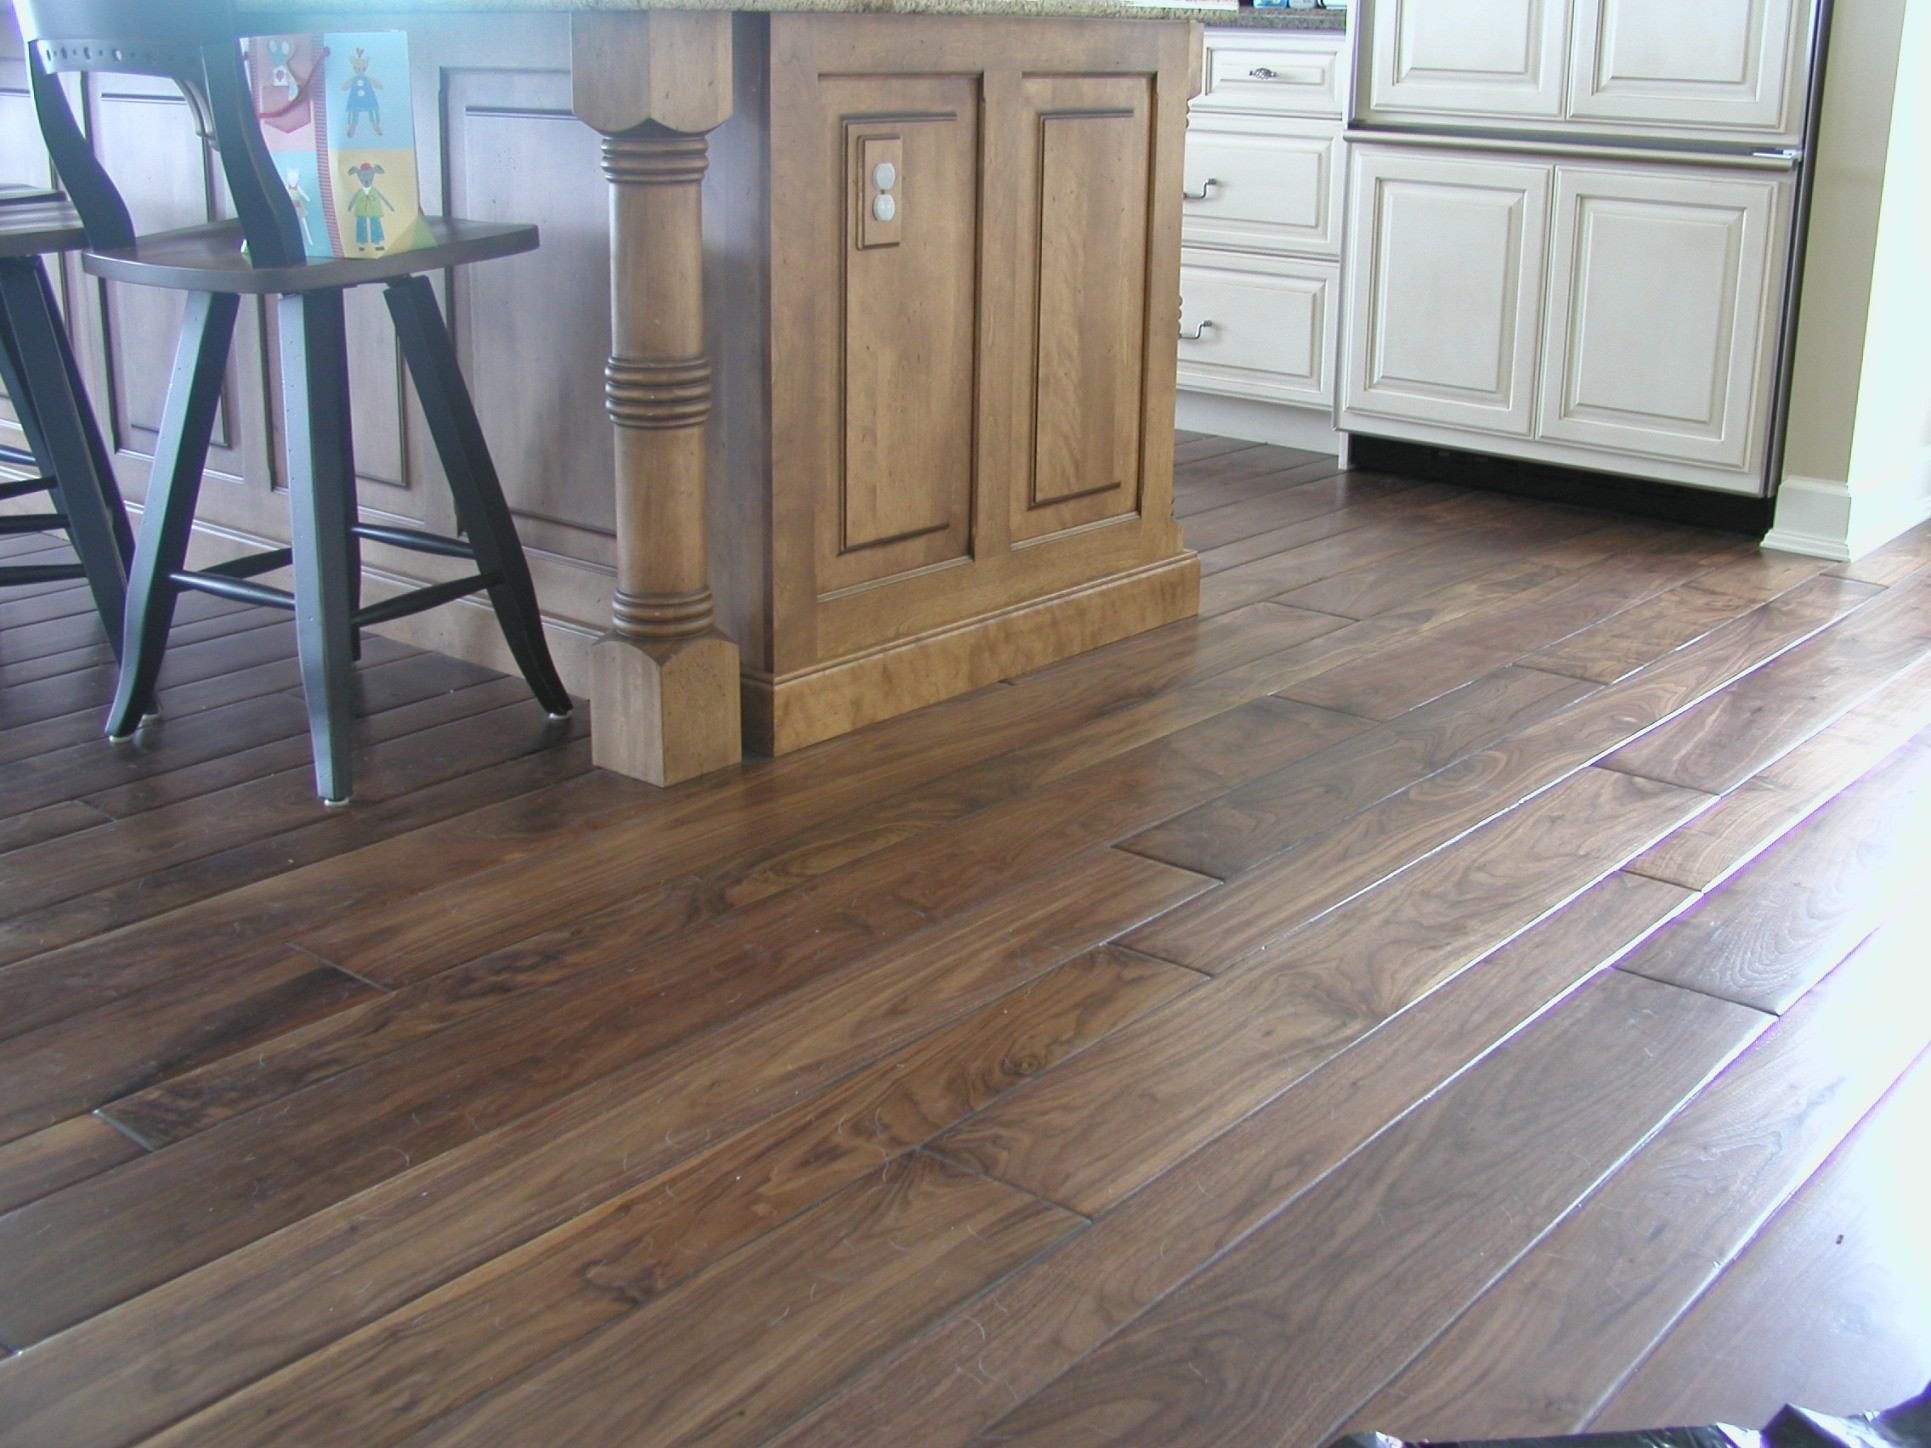 walnut oak hardwood flooring of millcreek flooring plan dj 0d floor with regard to millcreek flooring christopherson wood floors red oak white oak walnut install and